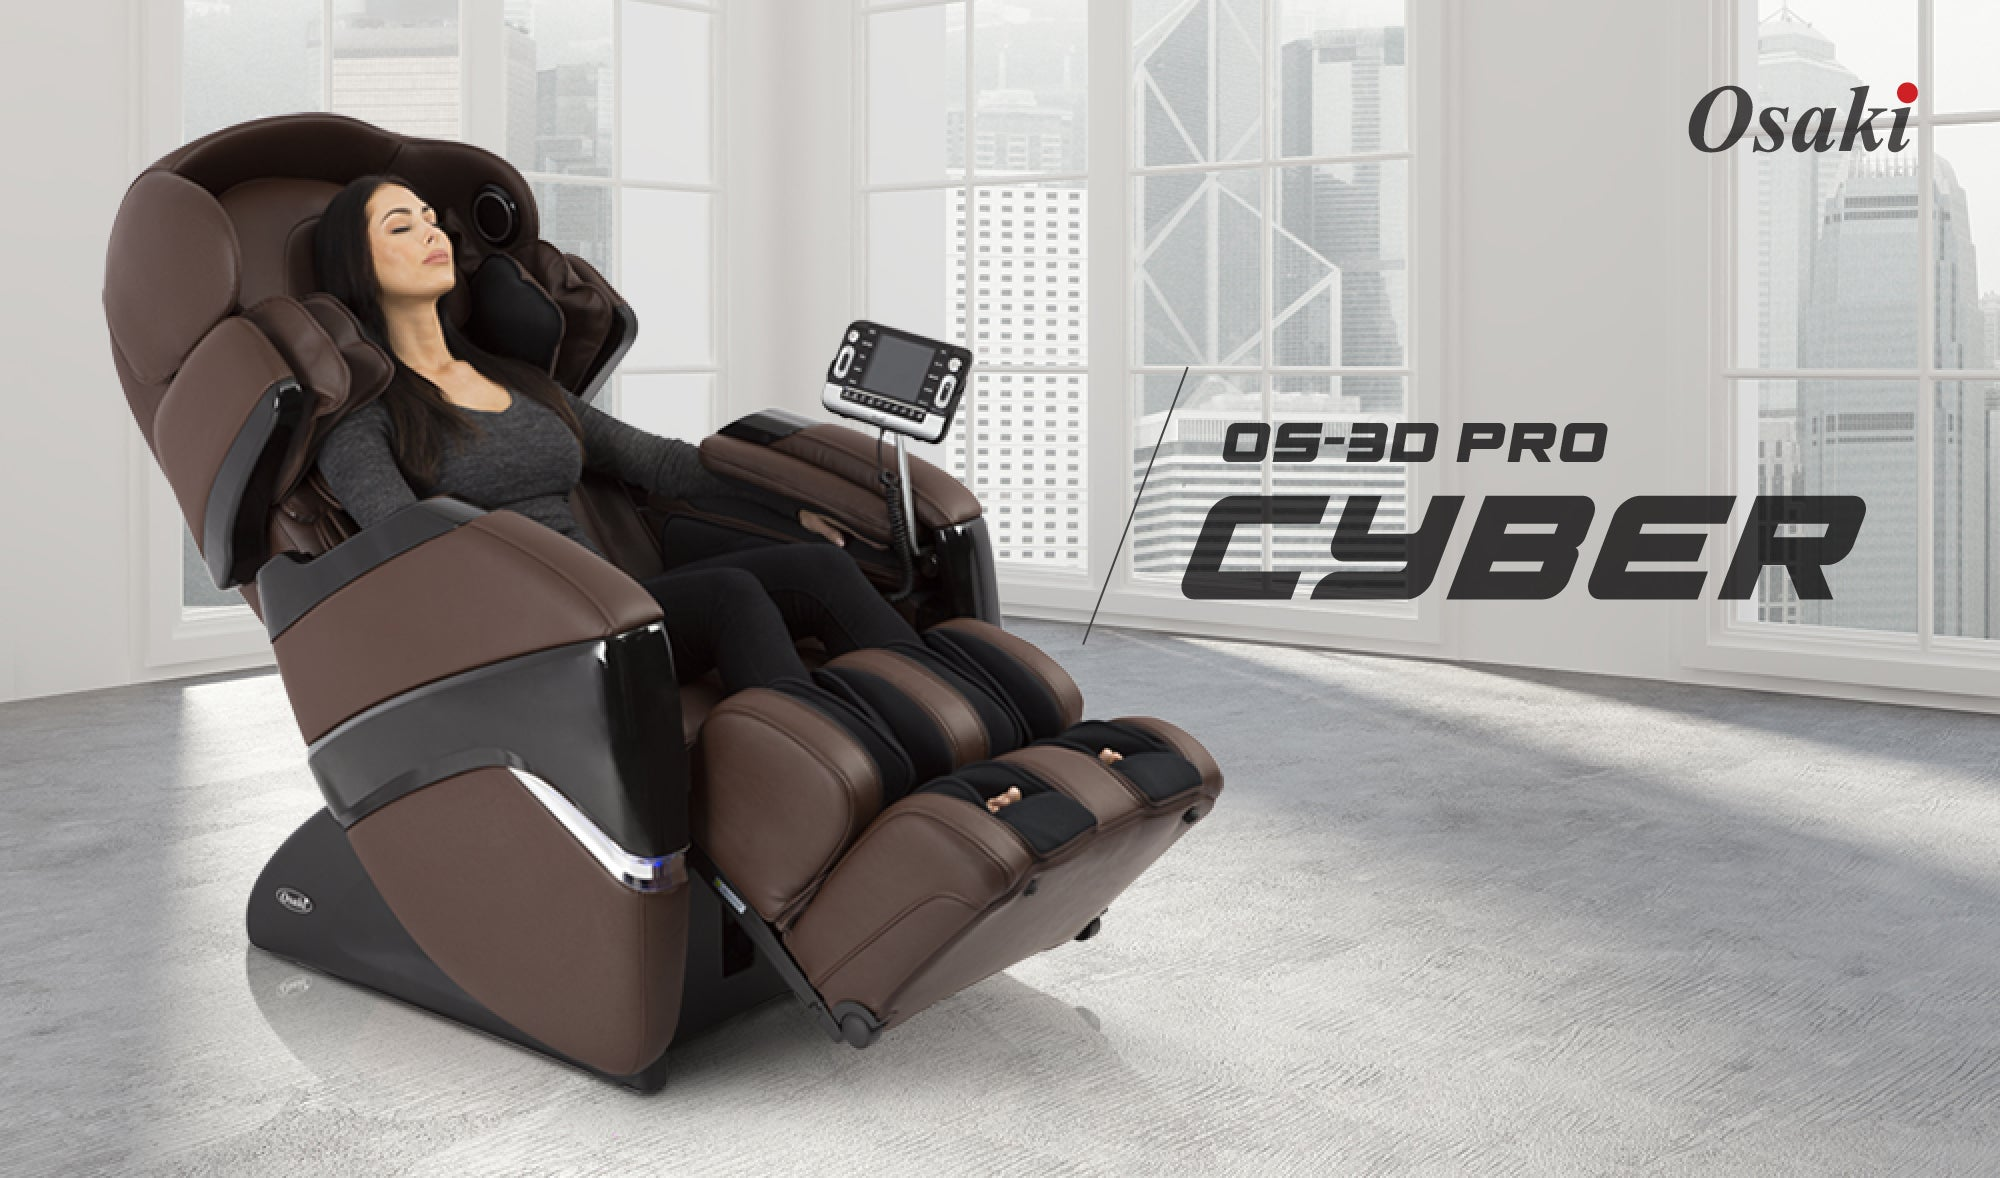 OS-3D Pro Cyber Banner